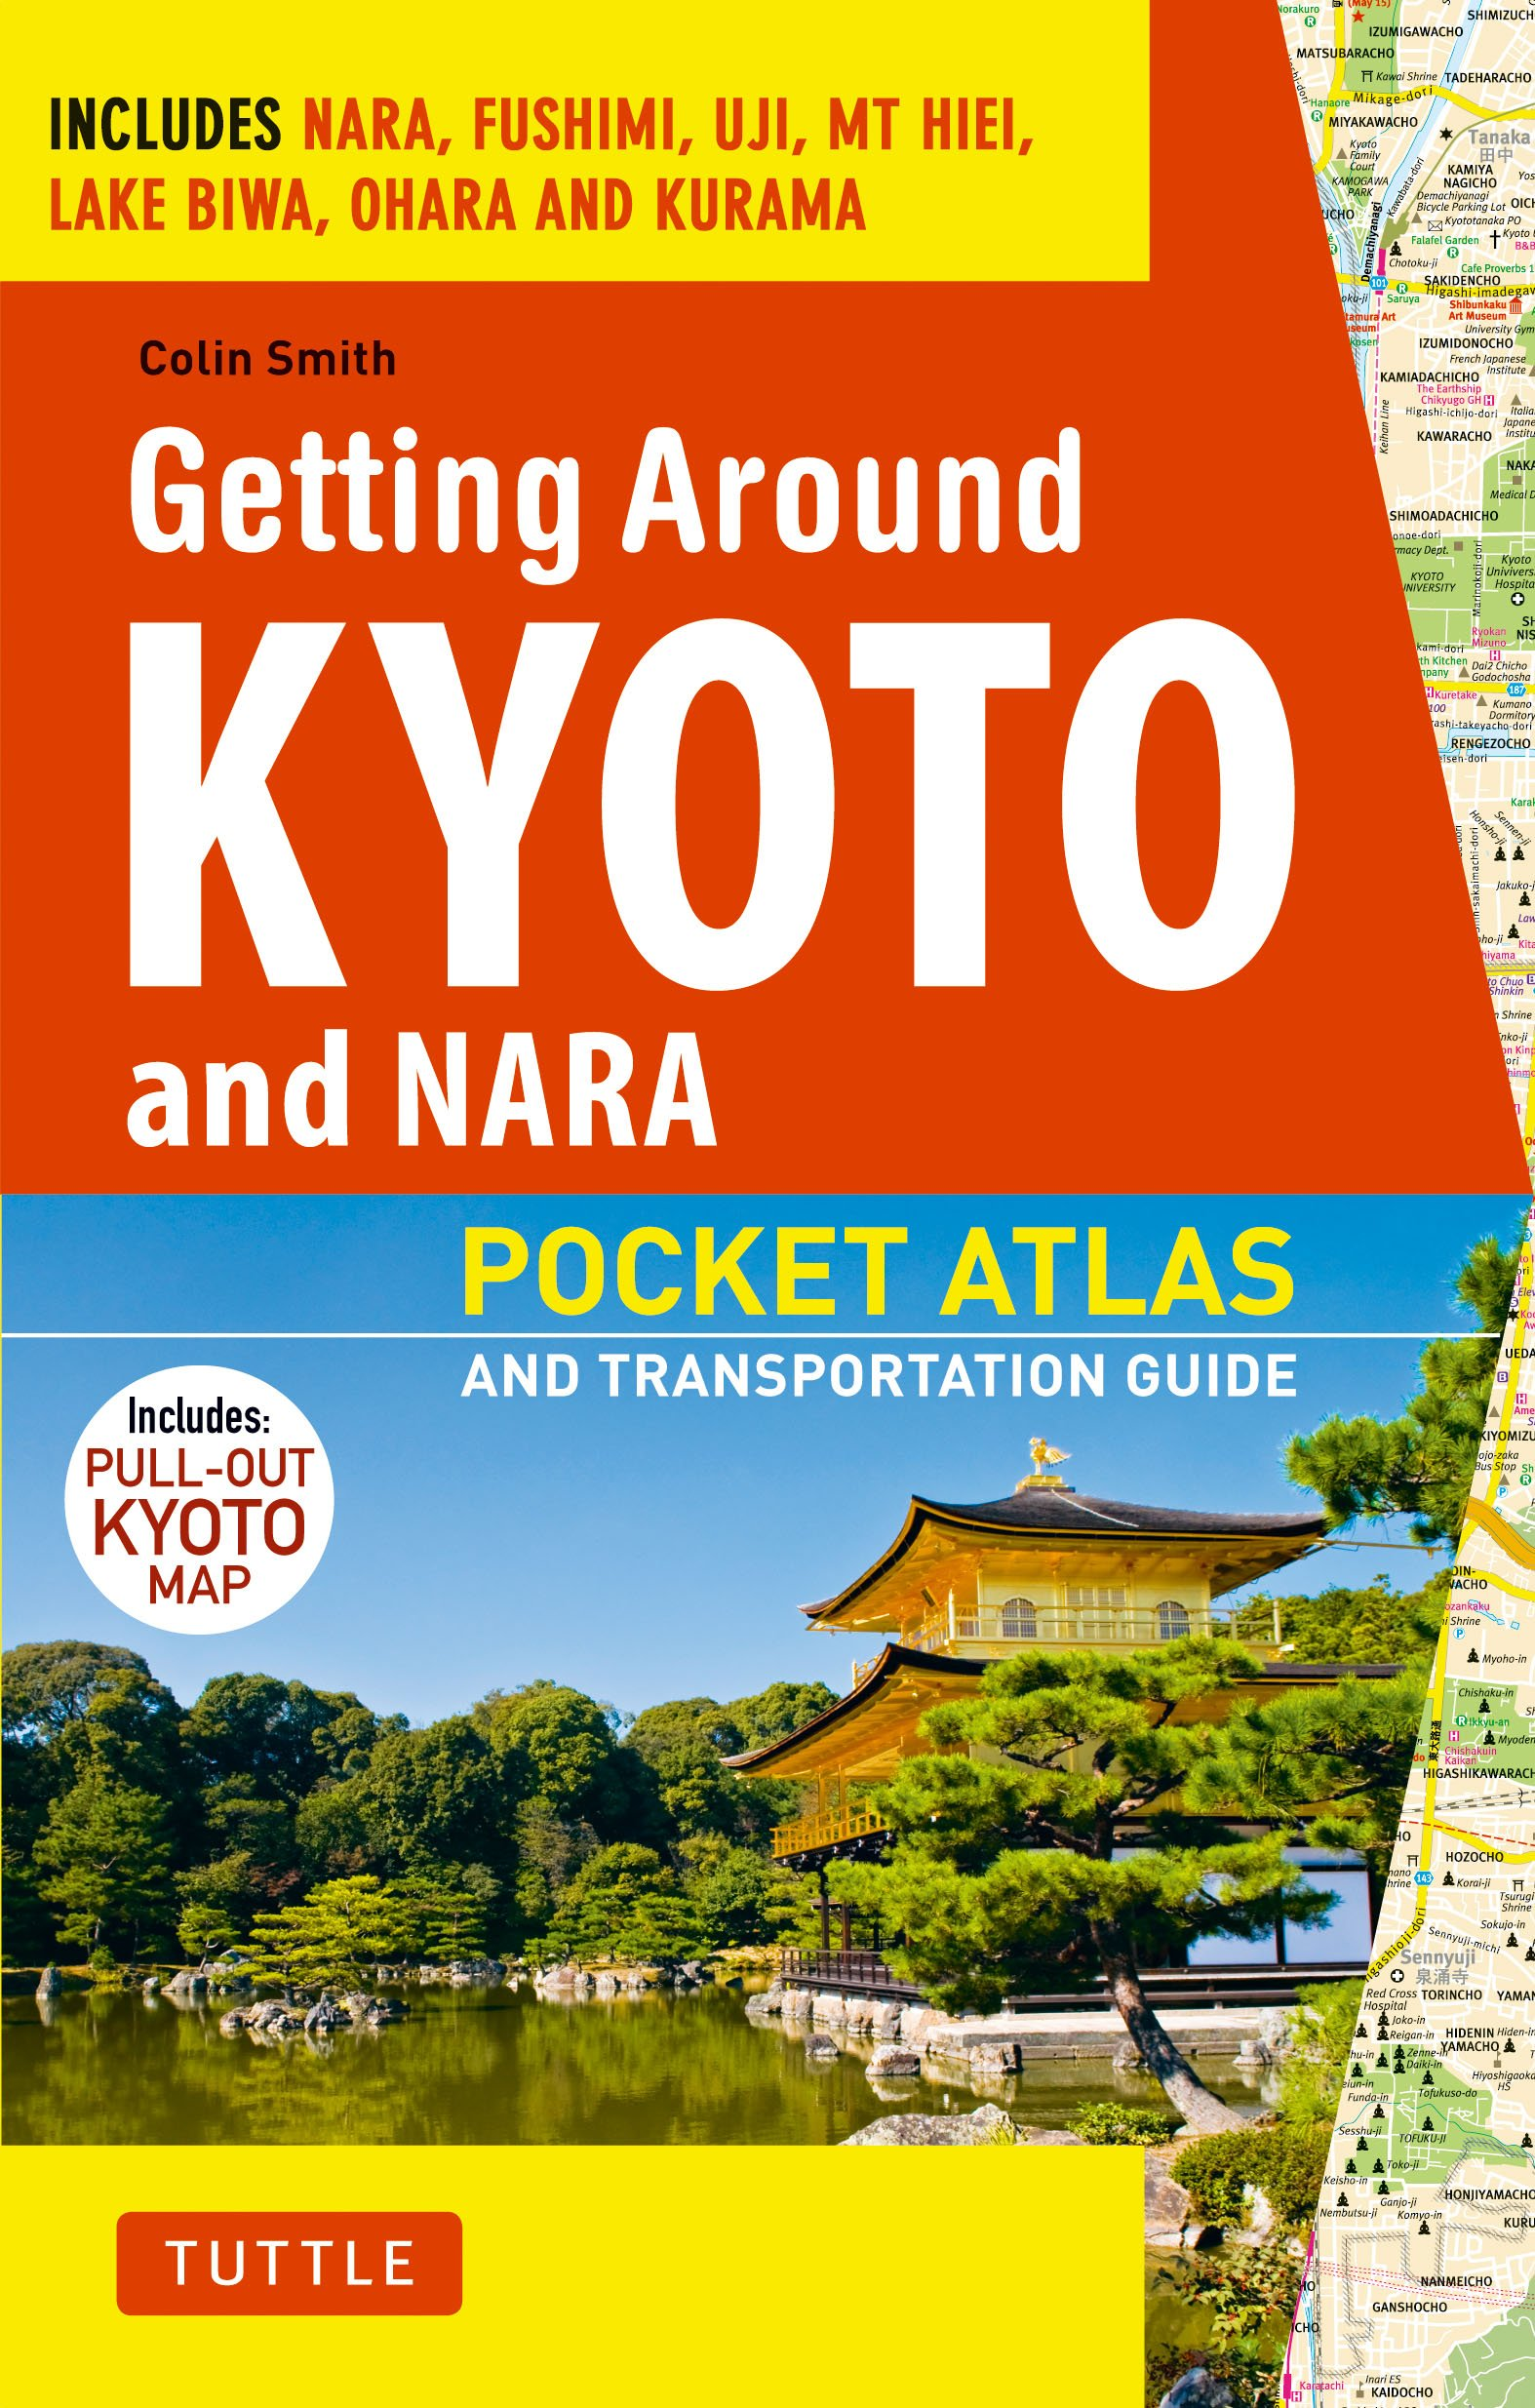 Getting Around Kyoto and Nara: Pocket Atlas and Transportation Guide